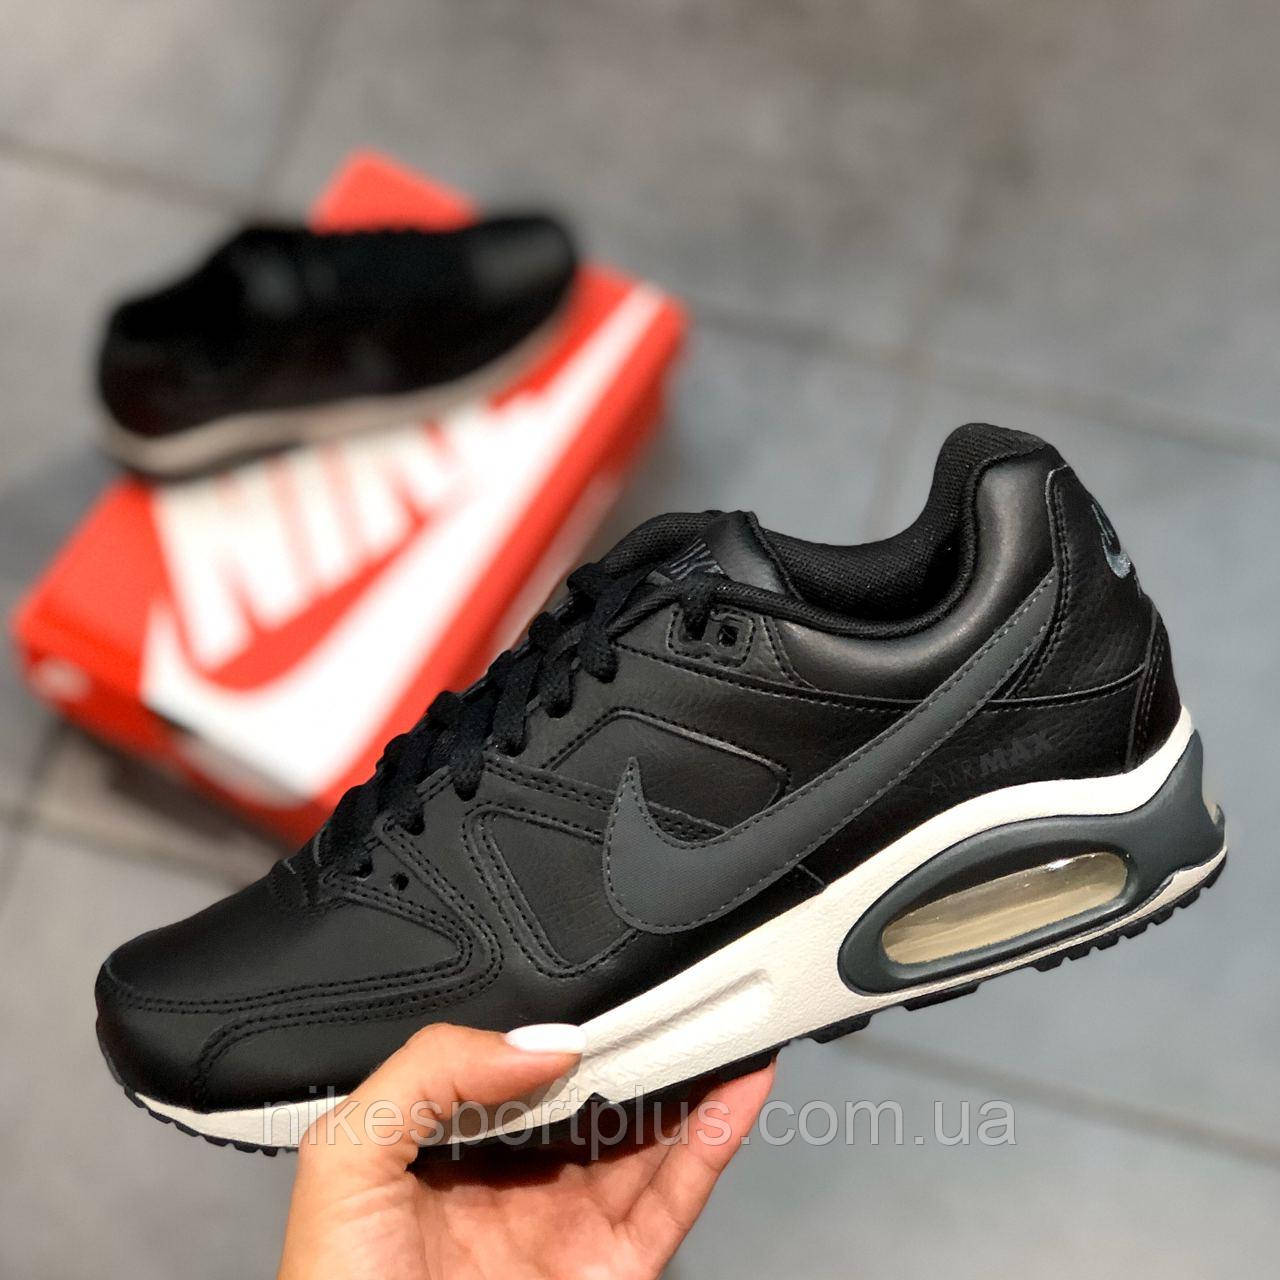 КРОССОВКИ NIKE AIR MAX COMMAND LEATHER 749760-001